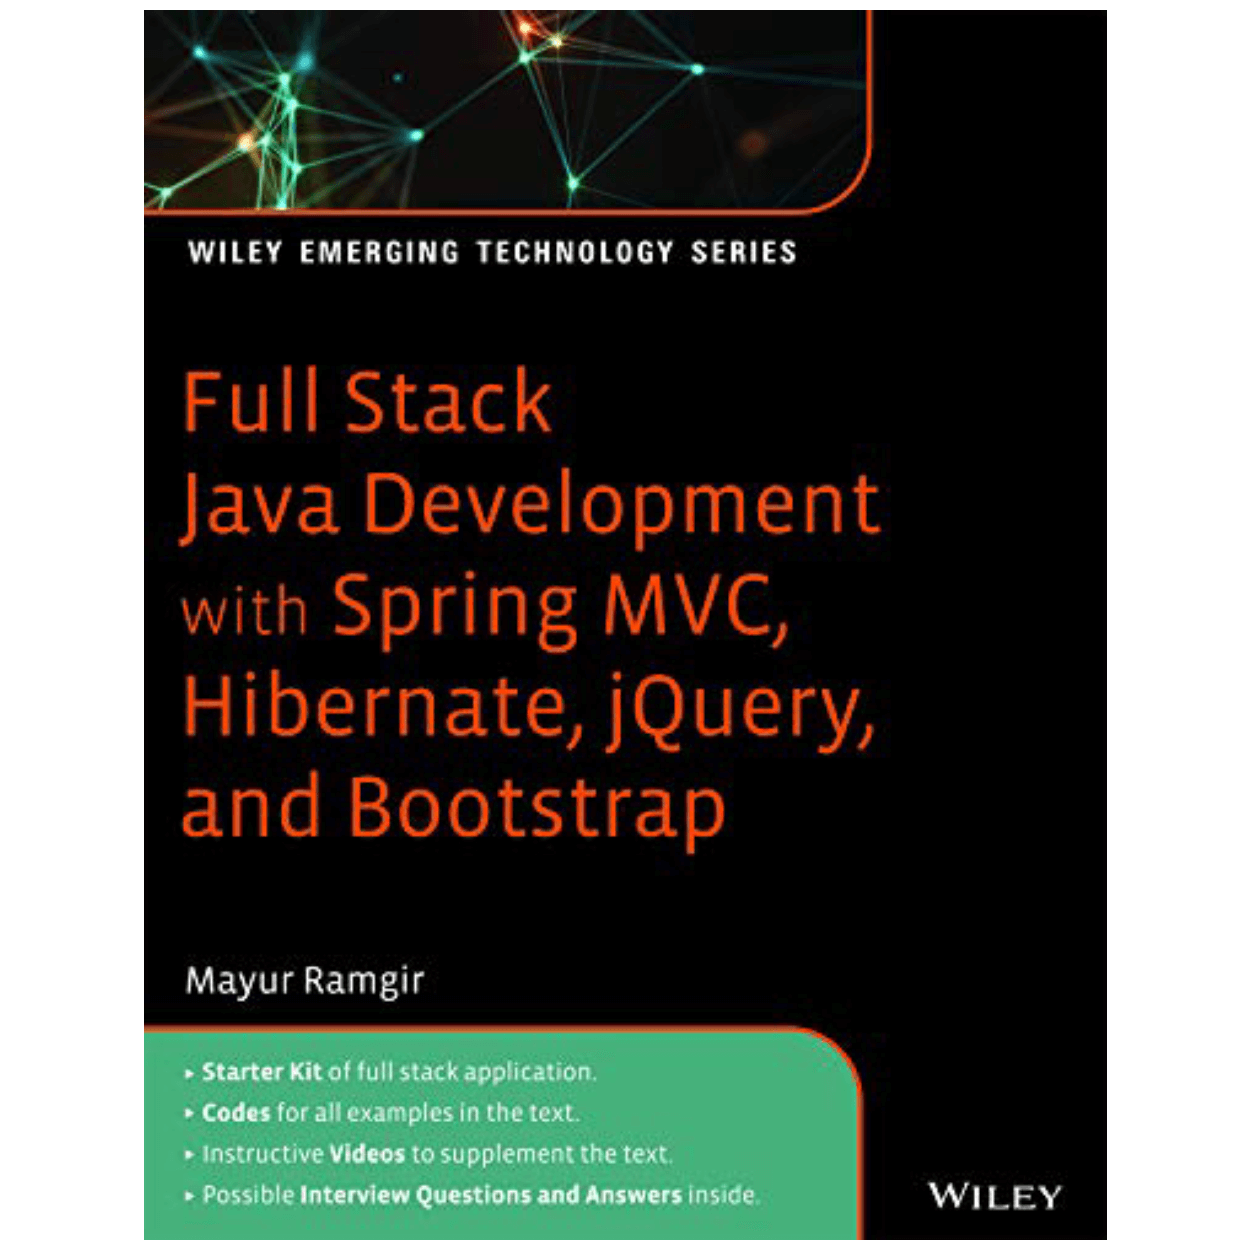 Wiley Published Mayur Ramgir's New Book on Full Stack Java Development